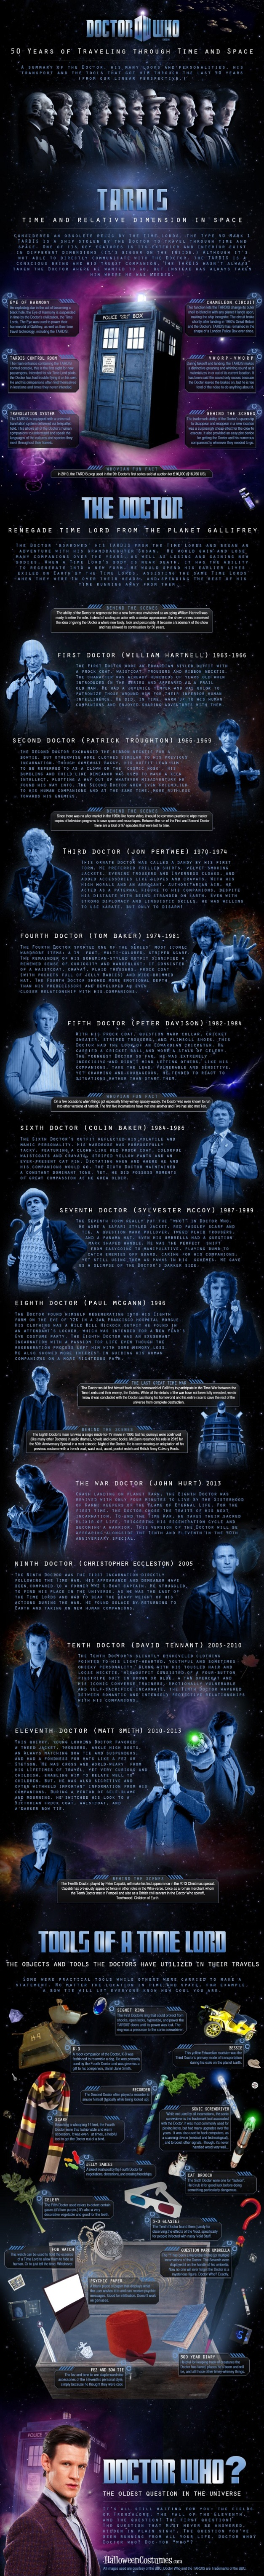 408682-infographic-50-years-of-doctor-who